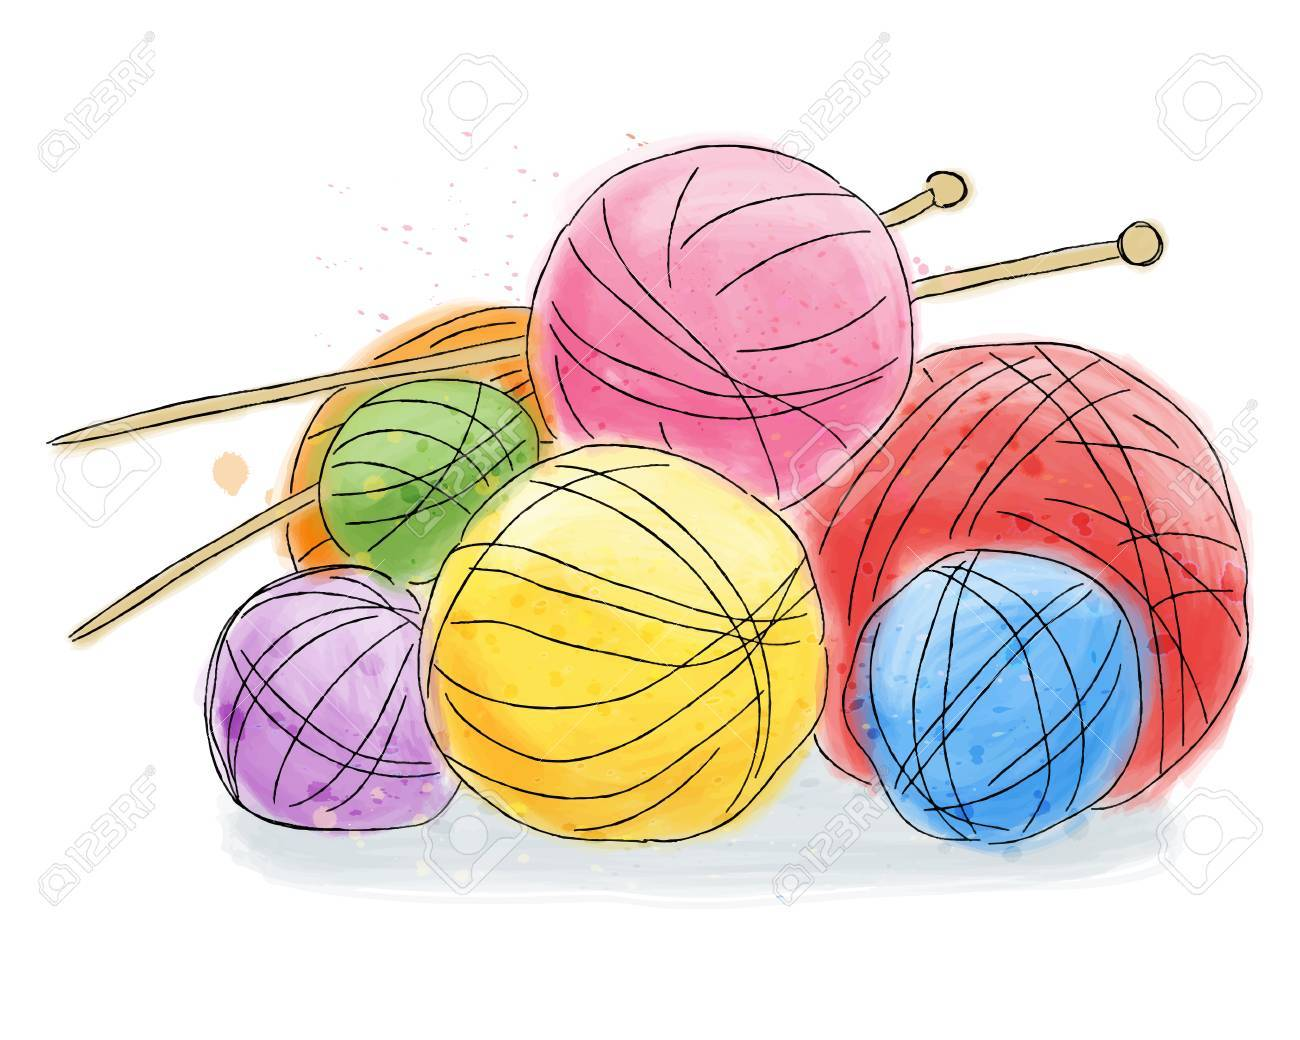 Ball of wool with pins, doodle watercolor painting - 84589262